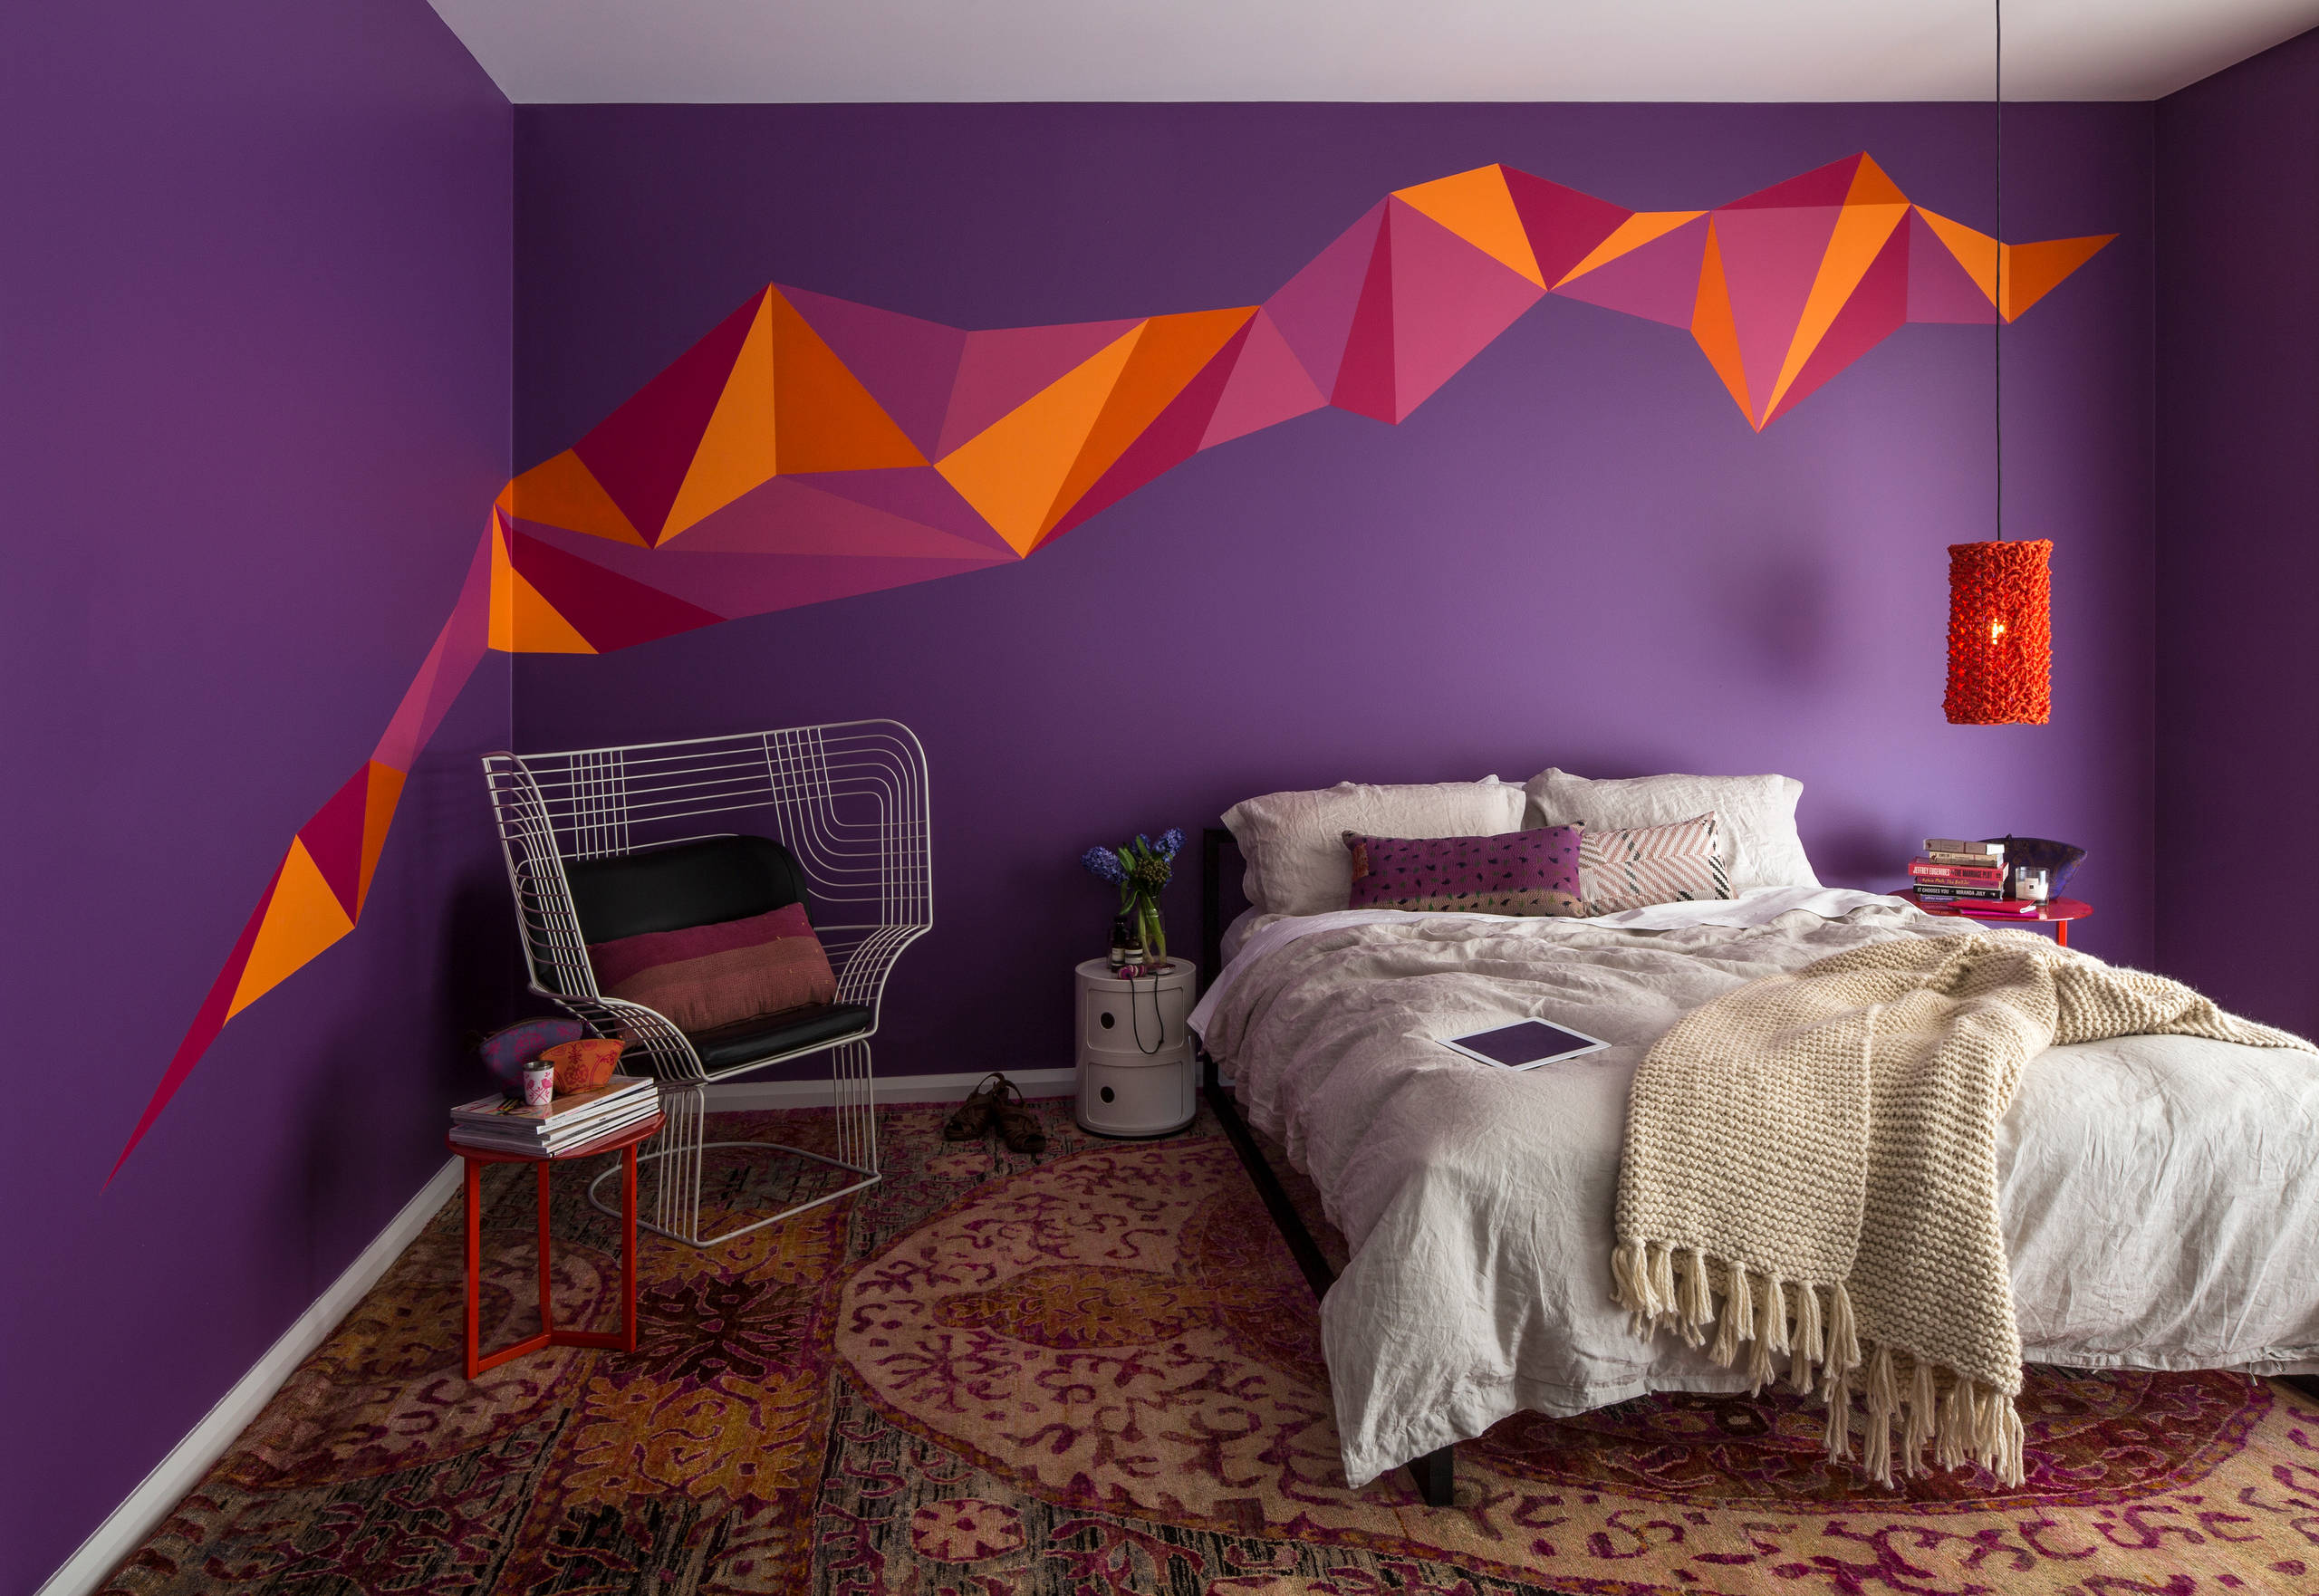 75 Beautiful Purple Bedroom Pictures Ideas March 2021 Houzz